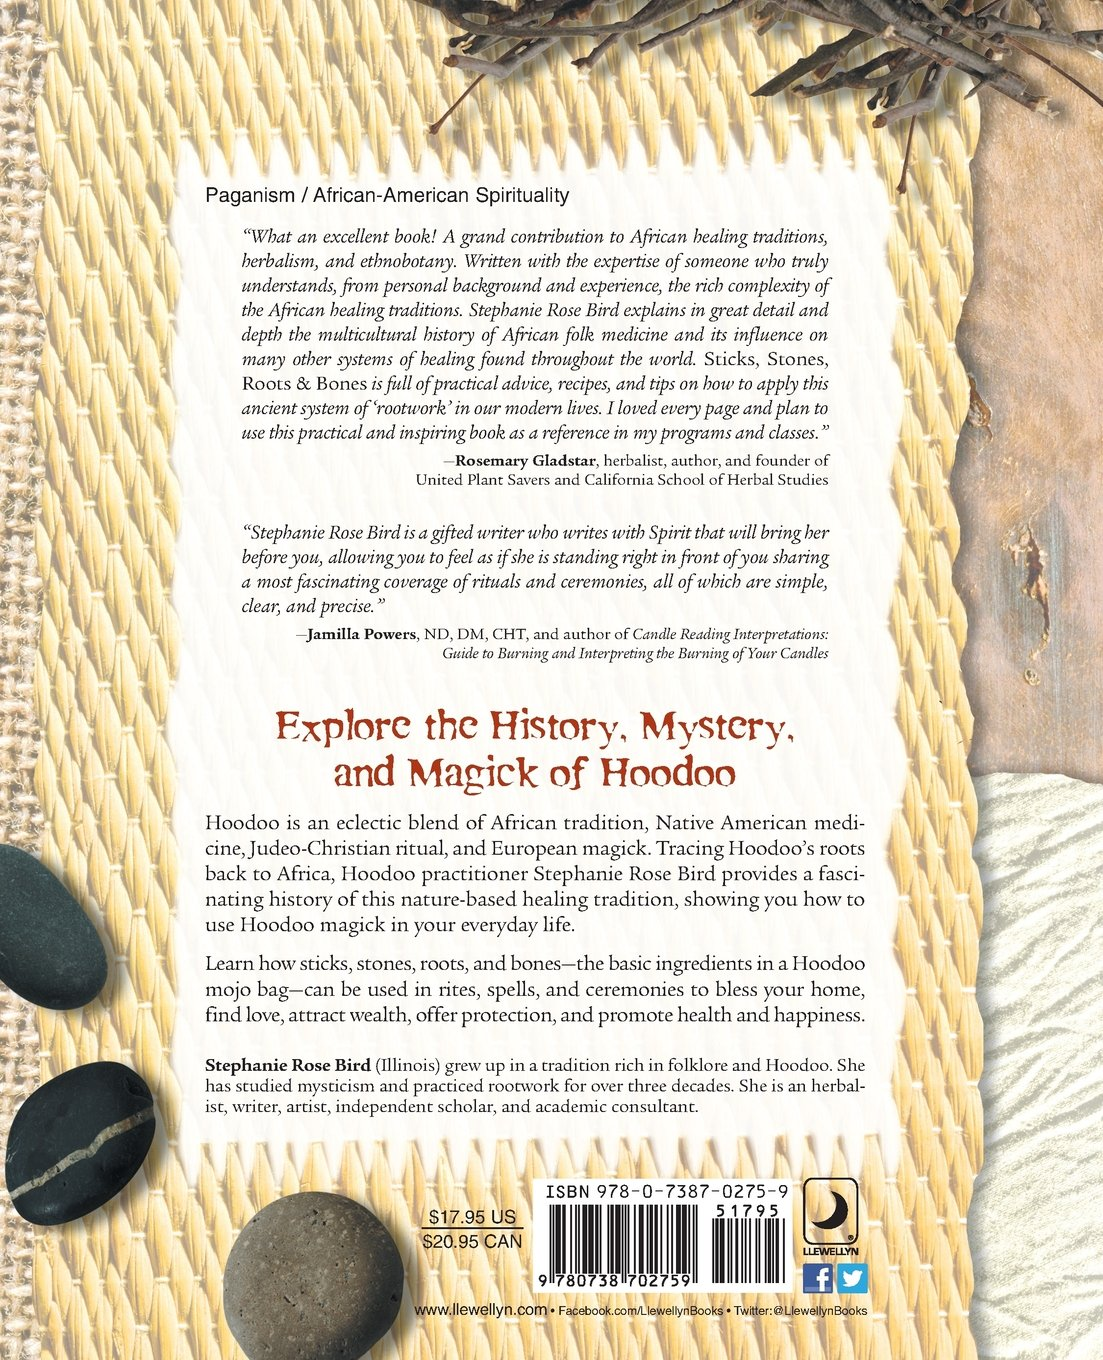 Sticks stones roots bones hoodoo mojo conjuring with herbs sticks stones roots bones hoodoo mojo conjuring with herbs stephanie rose bird 9780738702759 amazon books fandeluxe Image collections